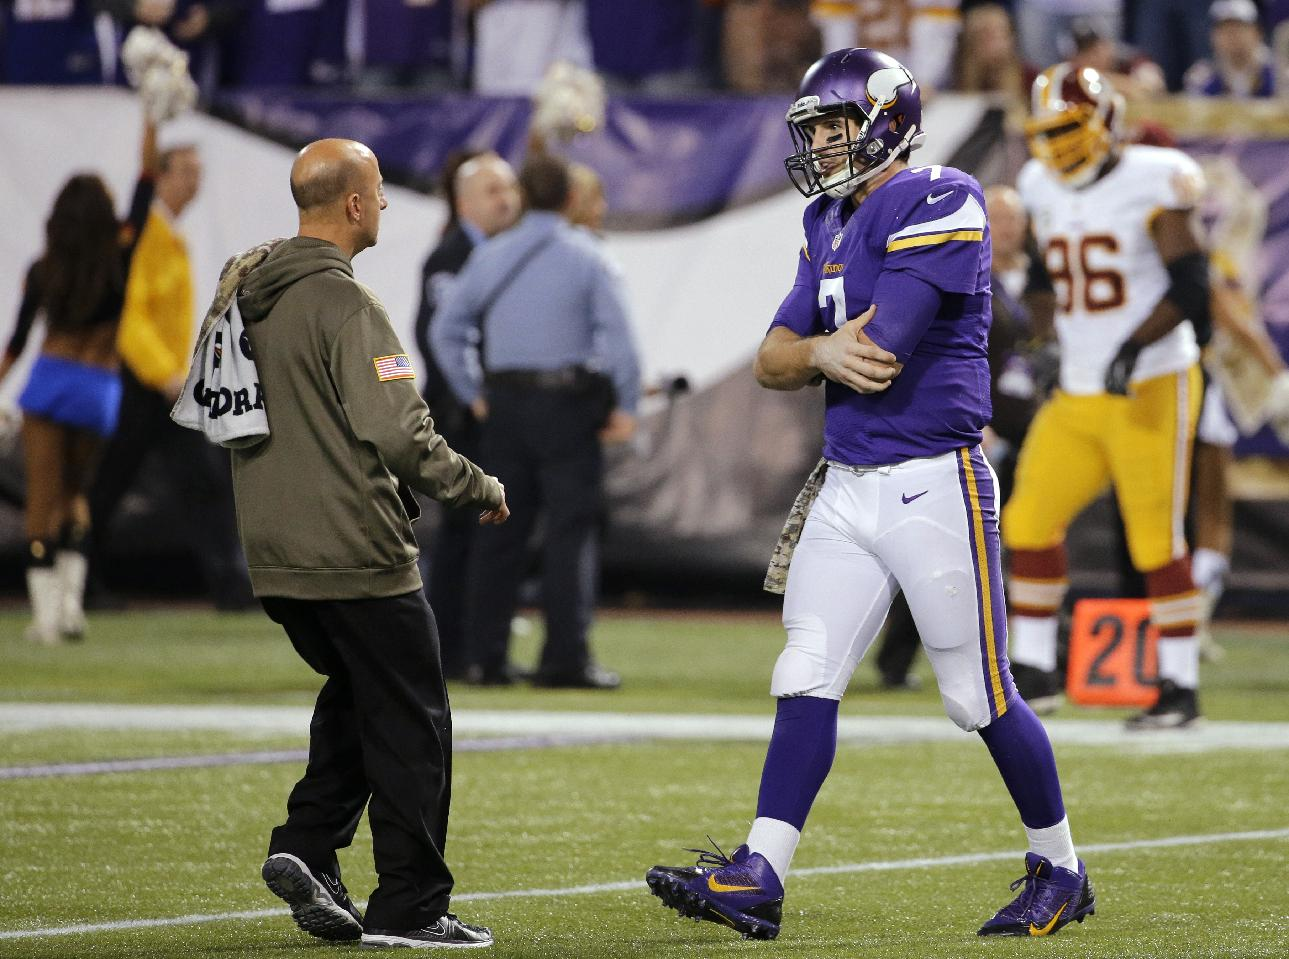 Minnesota Vikings quarterback Christian Ponder, right, is attended to by a trainer after an injury to his left shoulder during the second half of an NFL football game against the Washington Redskins, Thursday, Nov. 7, 2013, in Minneapolis